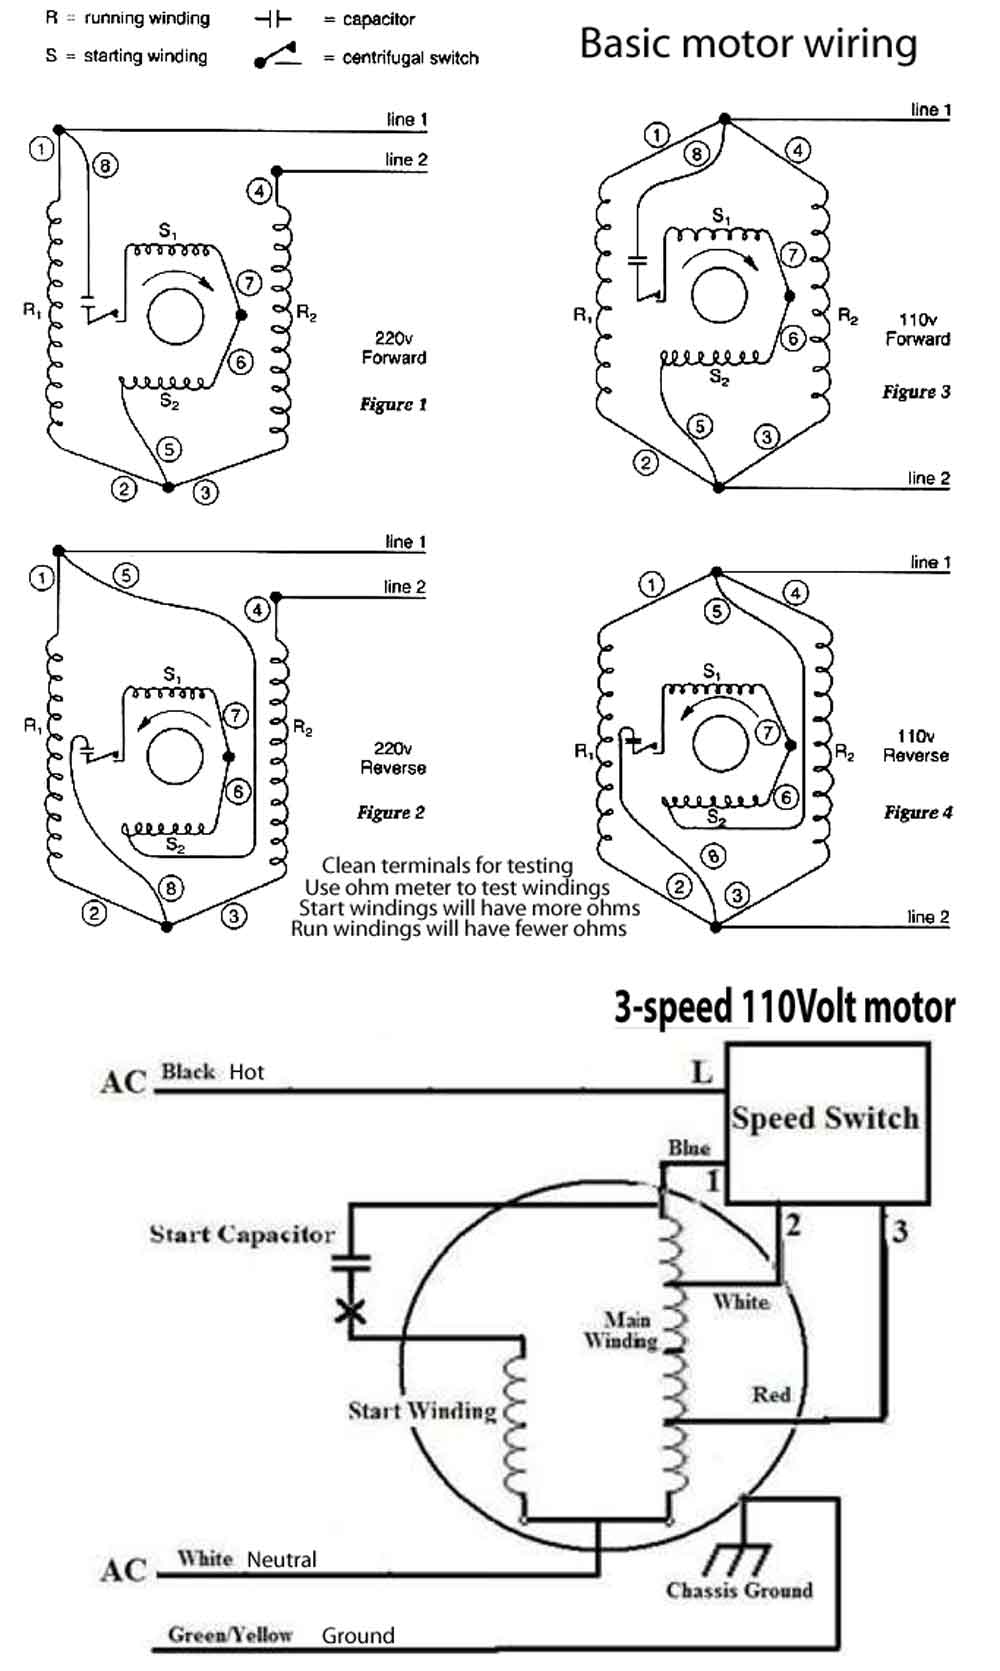 How To Wire 3 Speed Fan Switch Analog Wiring Diagram Motor